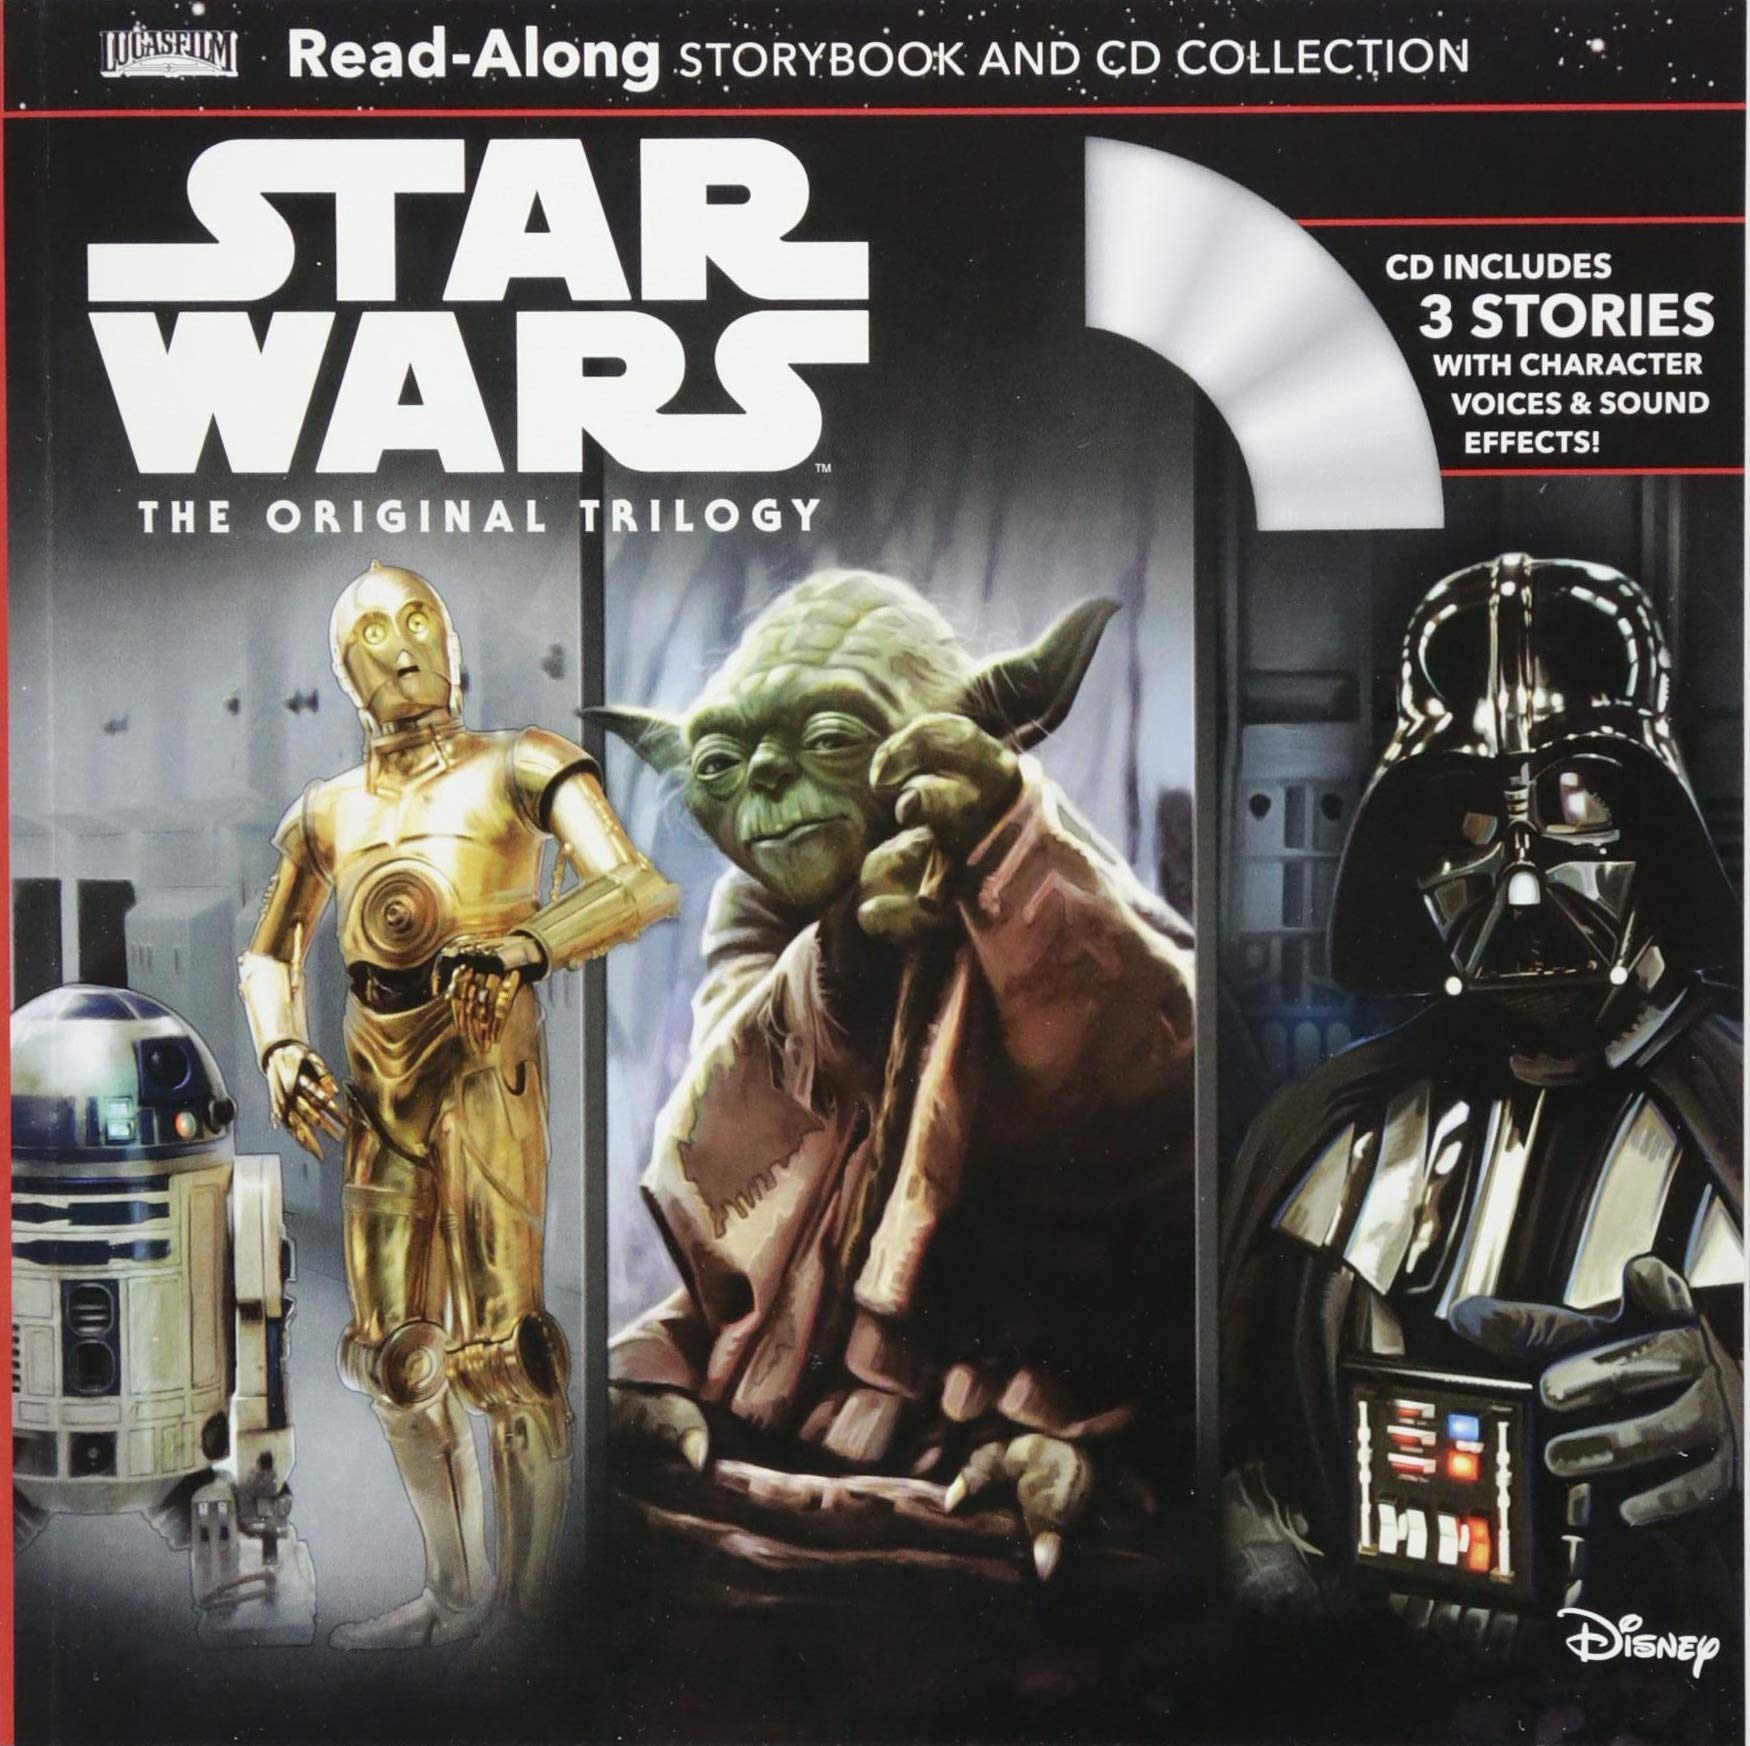 Download Star Wars The Original Trilogy Read-Along Storybook and CD Collection pdf